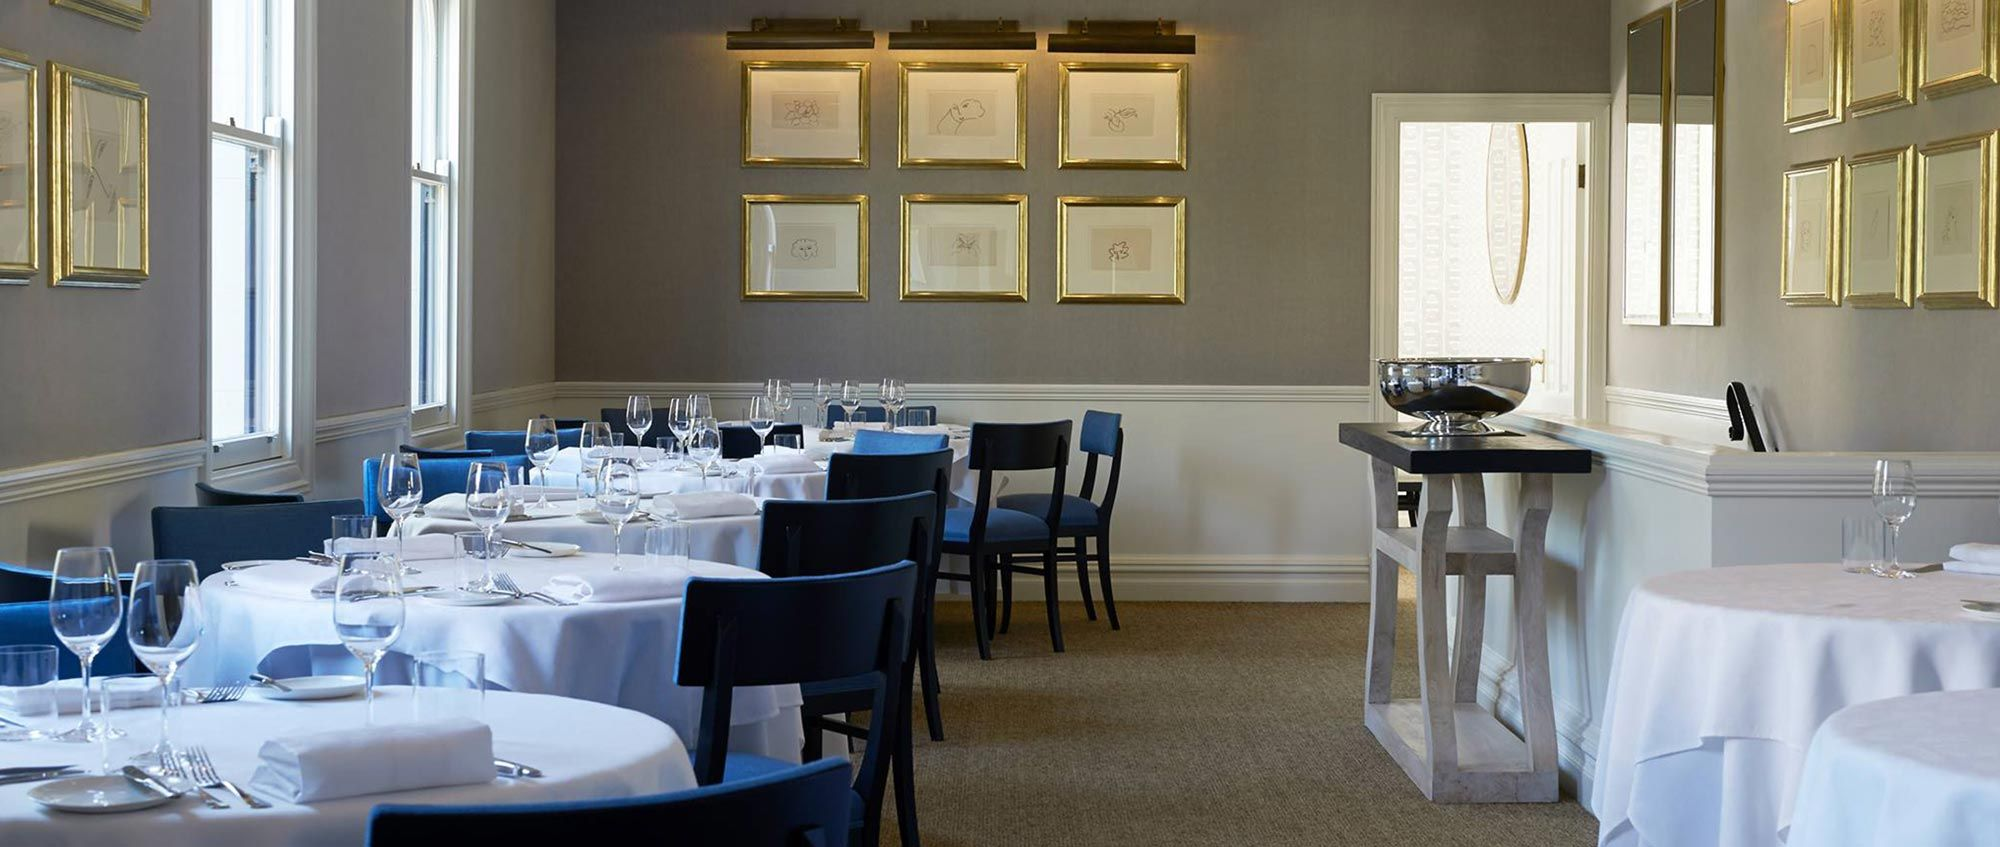 Guillaume Paddington Is An Elegant French Fine Dining Restaurant Located In Sydney Owned And Operated By Awa Sydney Restaurants French Restaurants Restaurant